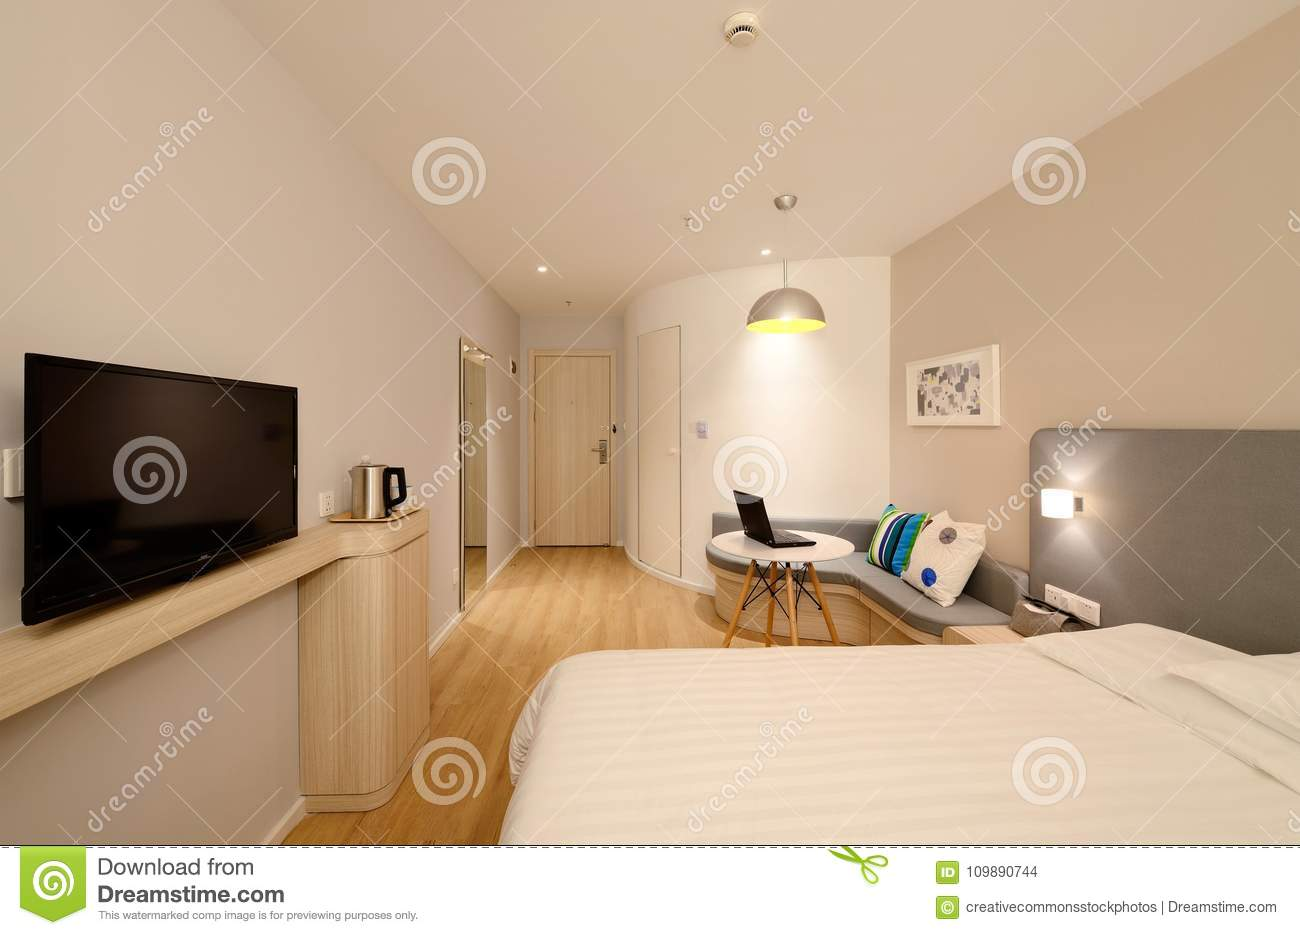 Bed Bedroom Furniture Public Domain Image Bed Bedroom Furniture Free Public Domain